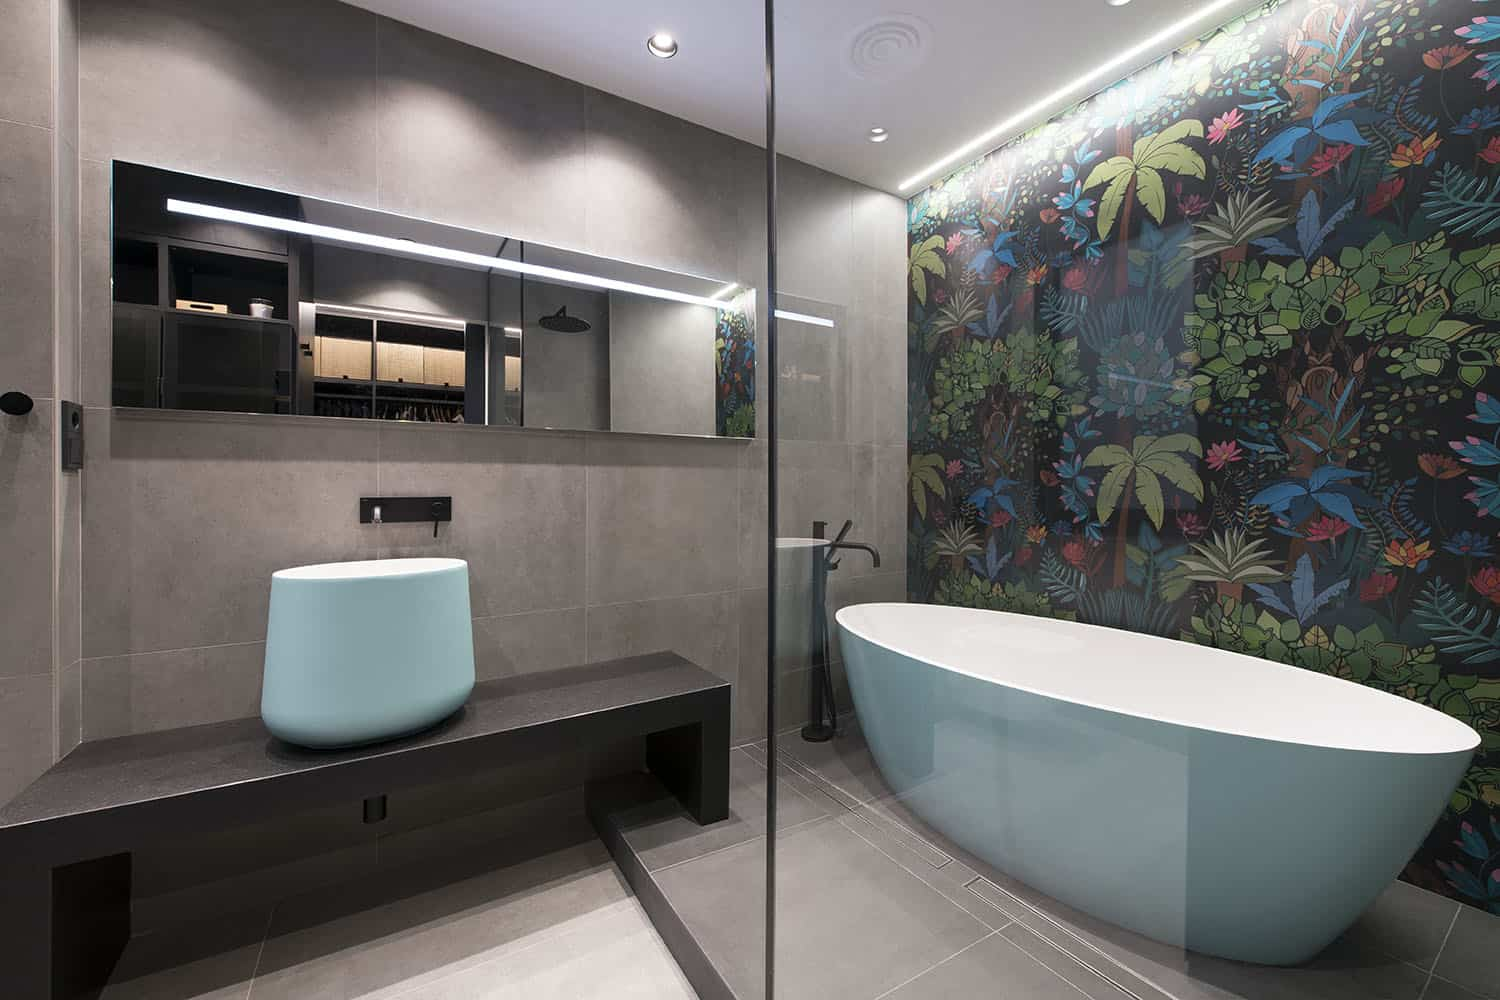 The bathroom is clad with grey tiles, a dark floral wall makes a statement and aqua appliances add to the space